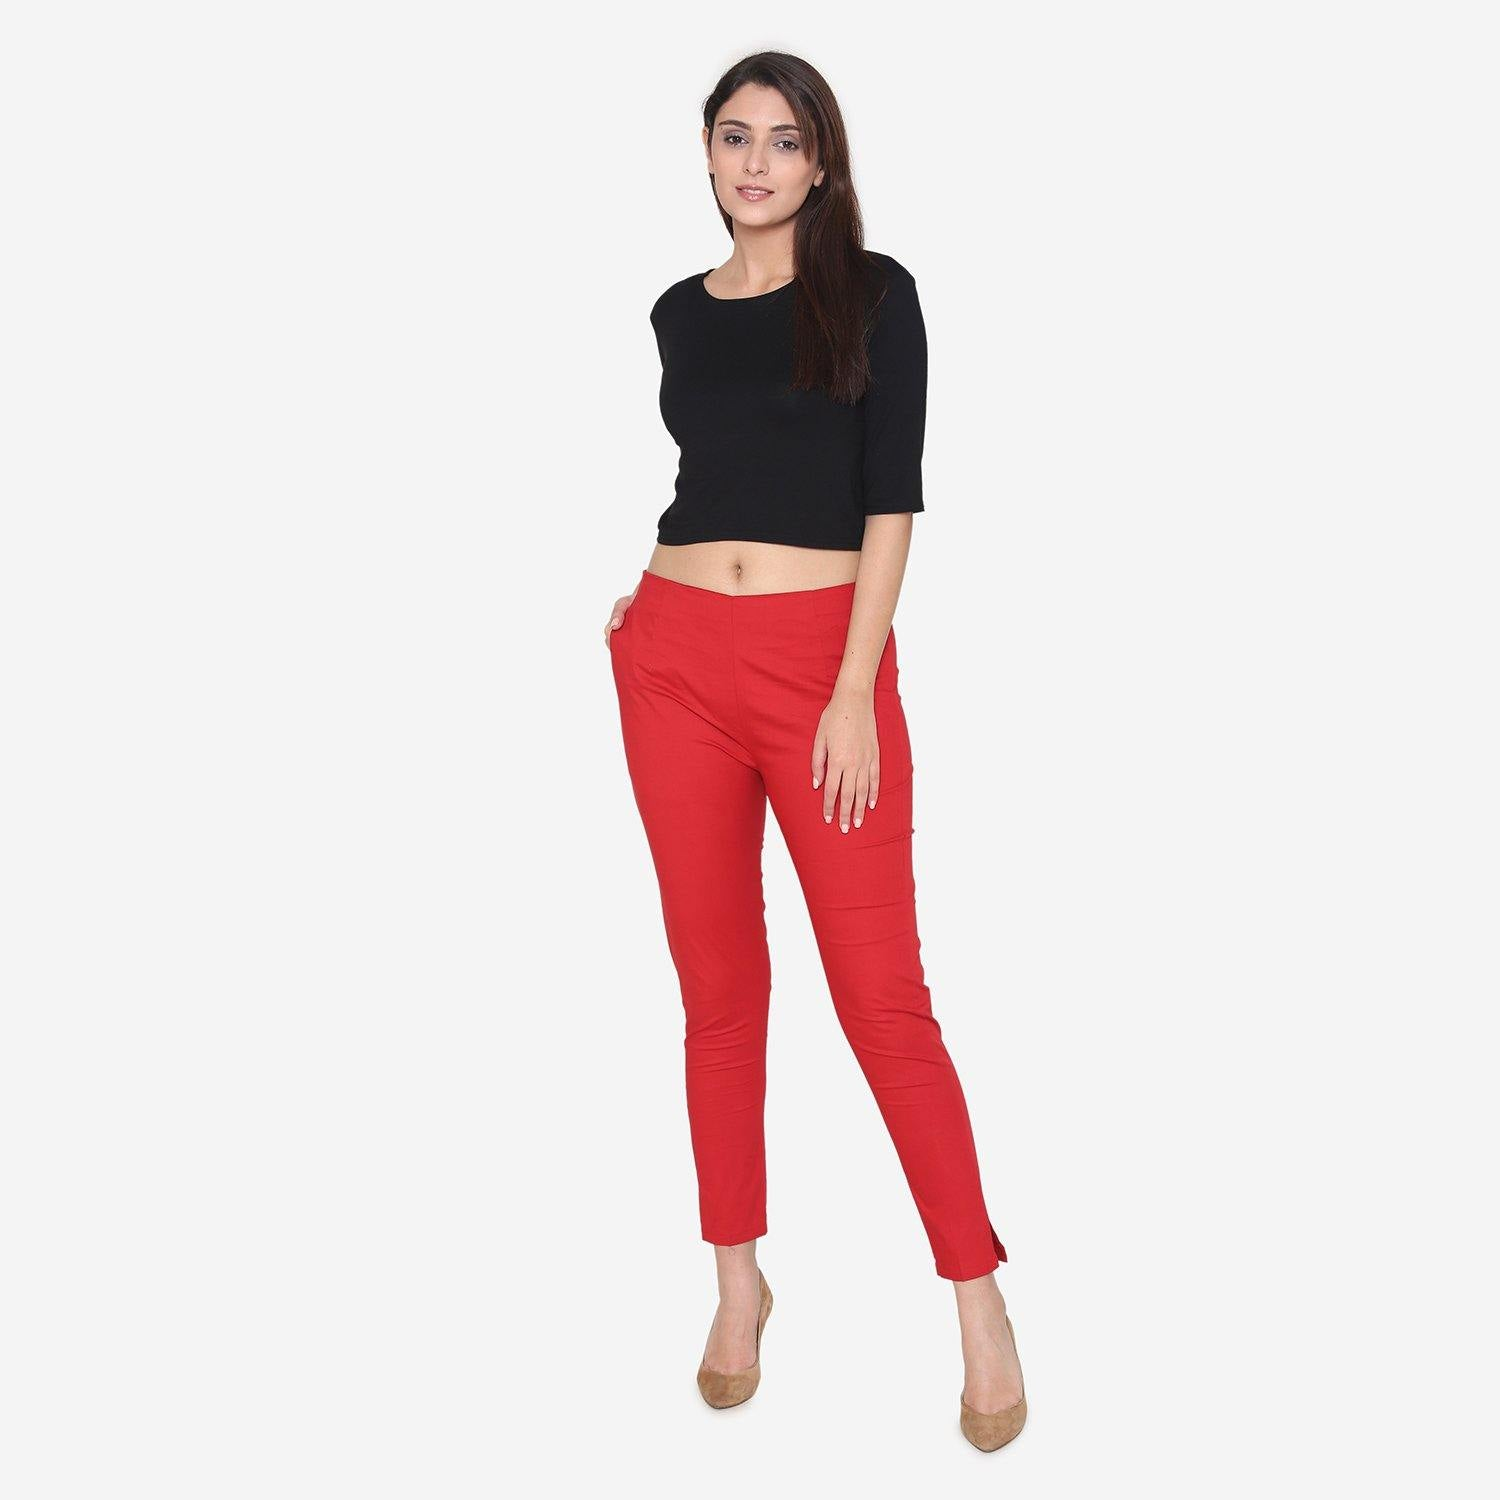 Vami Women's Cotton Formal Trousers - True Red